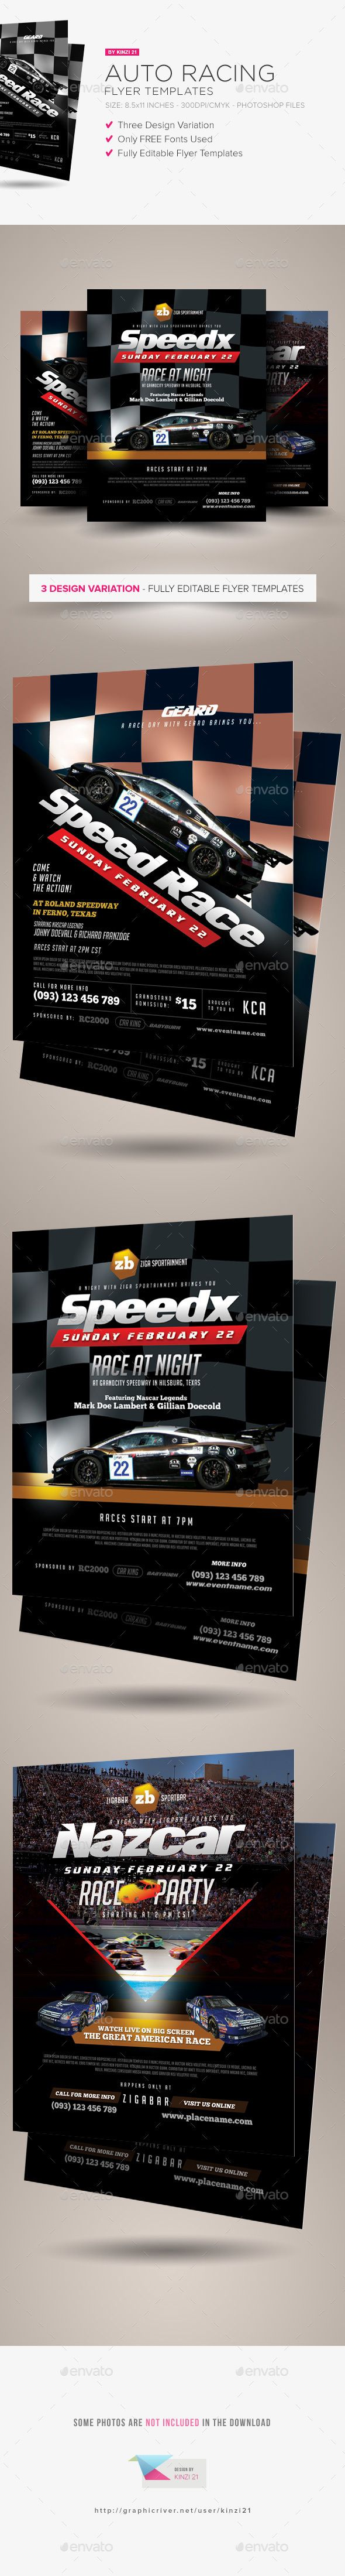 Auto Racing Flyer Templates — Photoshop PSD #auto #motor • Available here → https://graphicriver.net/item/auto-racing-flyer-templates/14737404?ref=pxcr